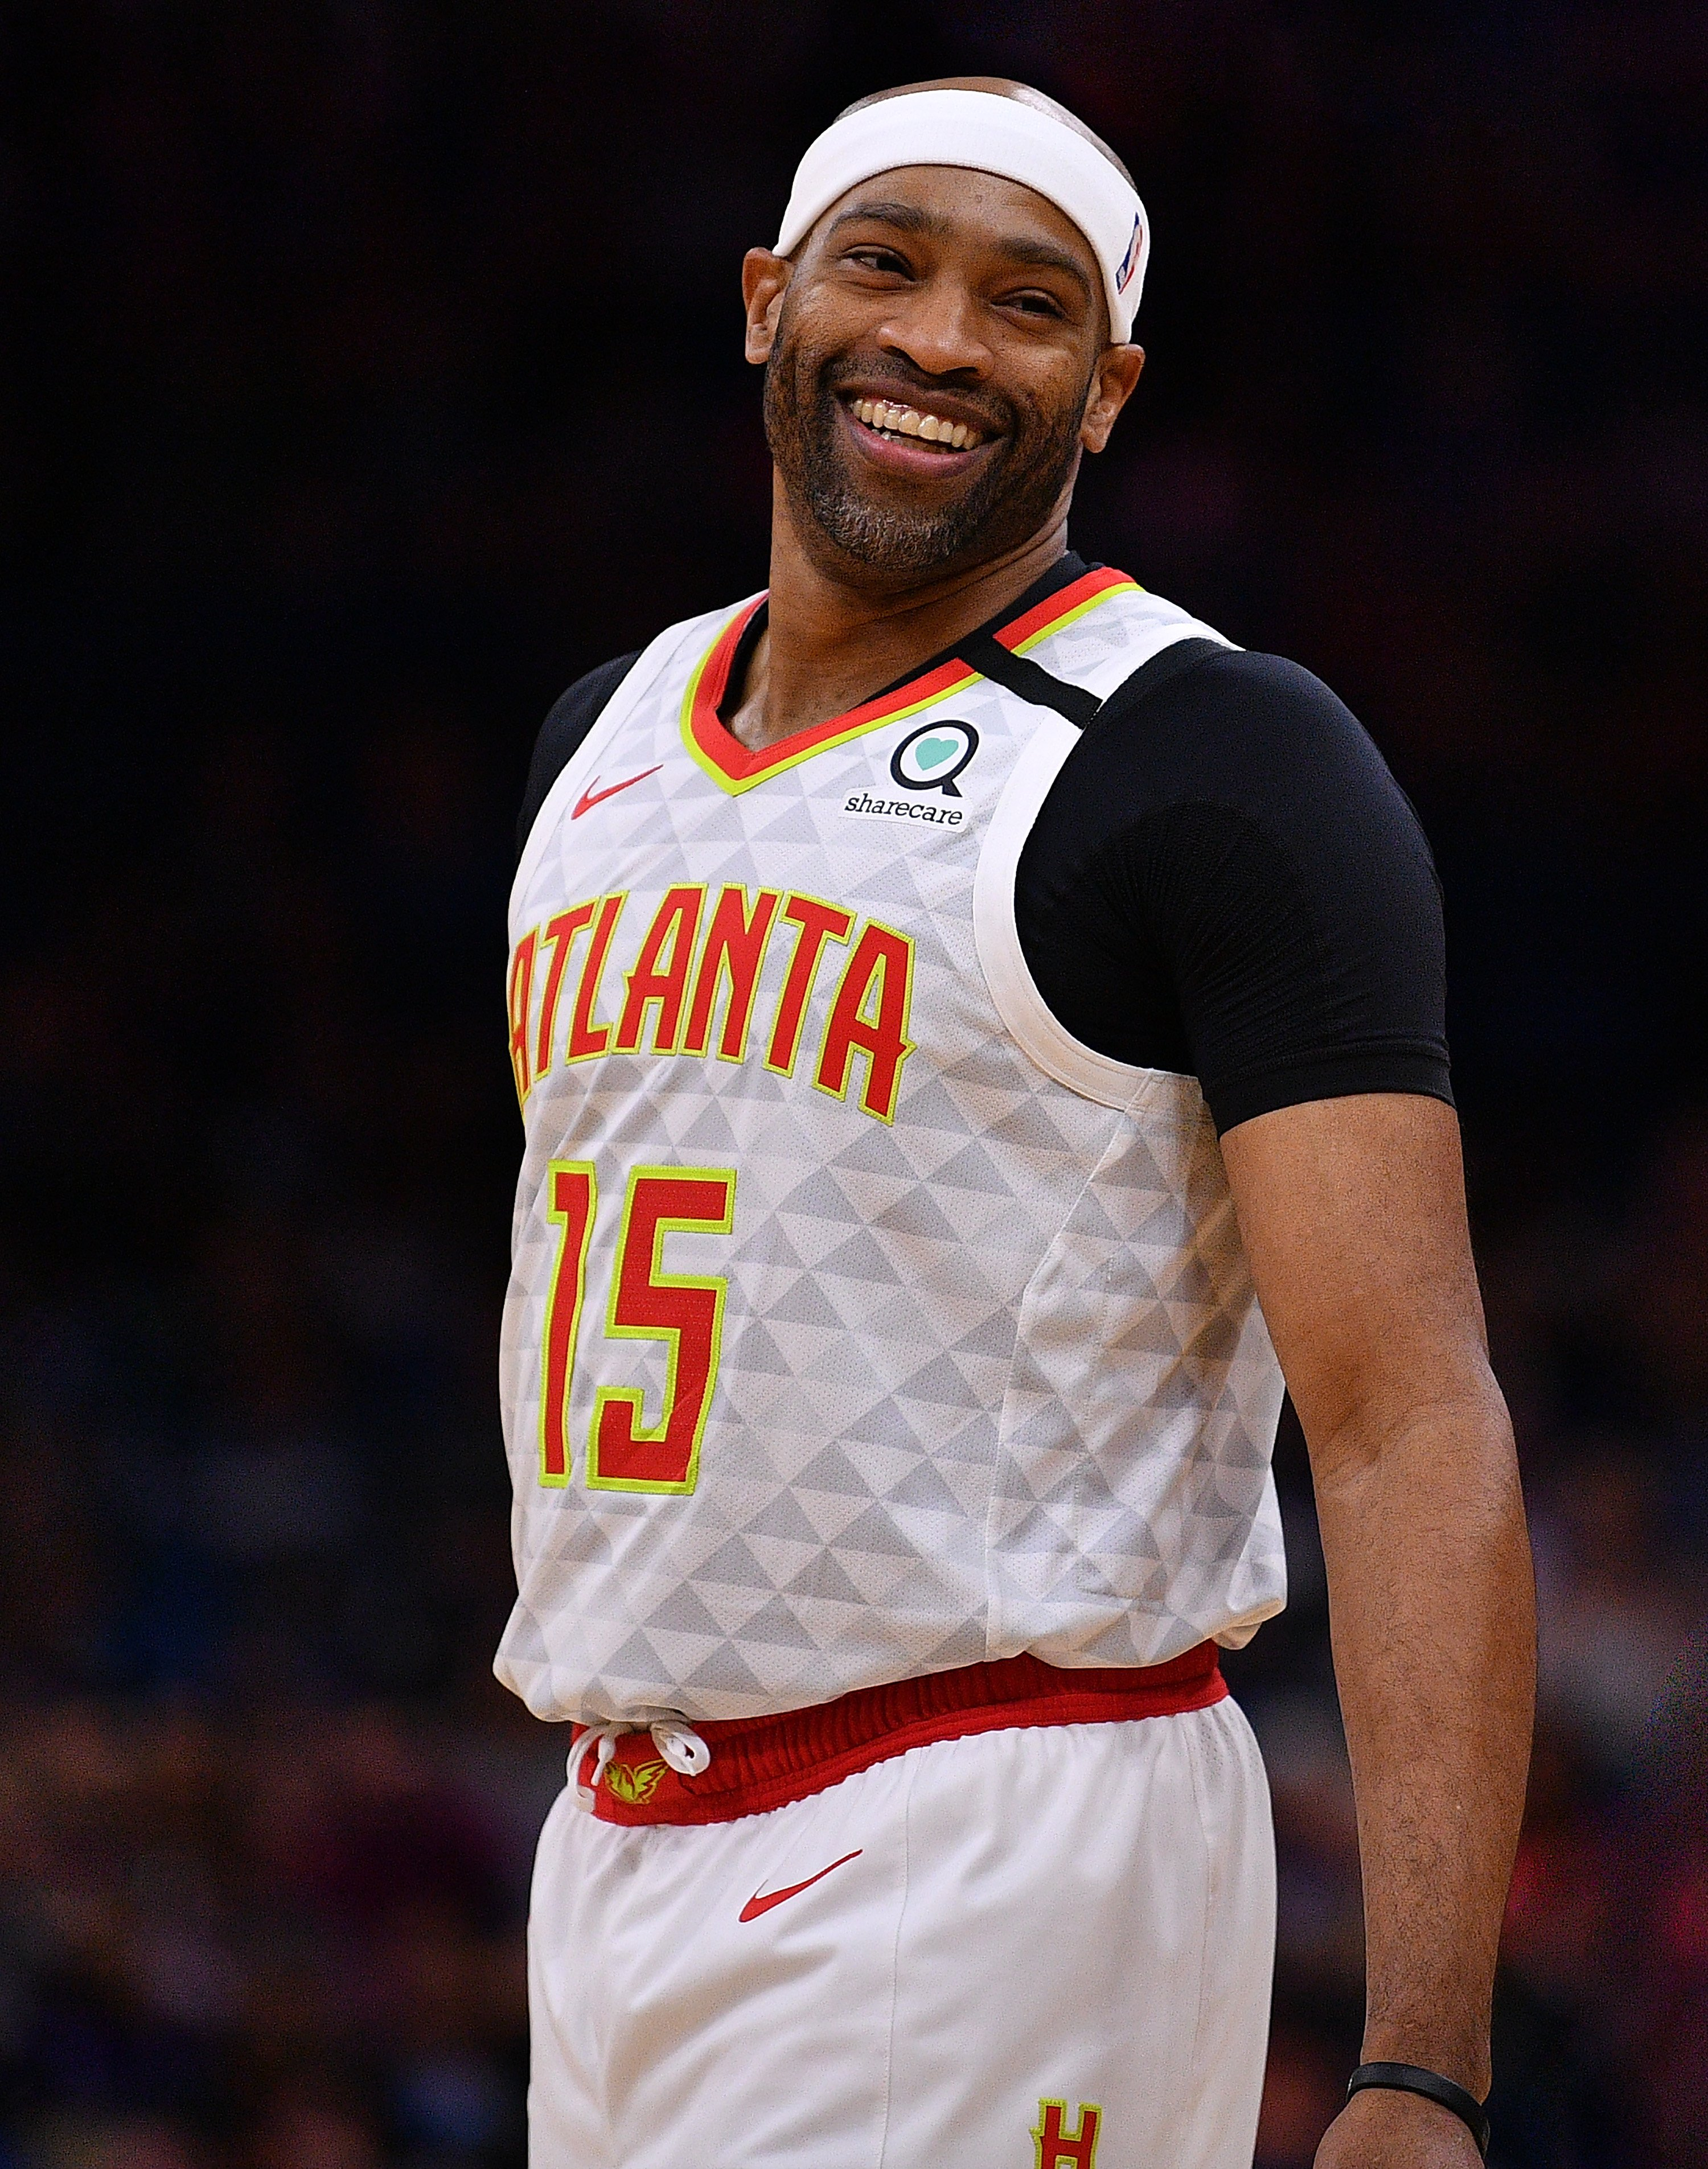 Vince Carter in action against the Orlando Magic at Amway Center on February 10, 2020 in Orlando, Florida. | Source: Getty Images